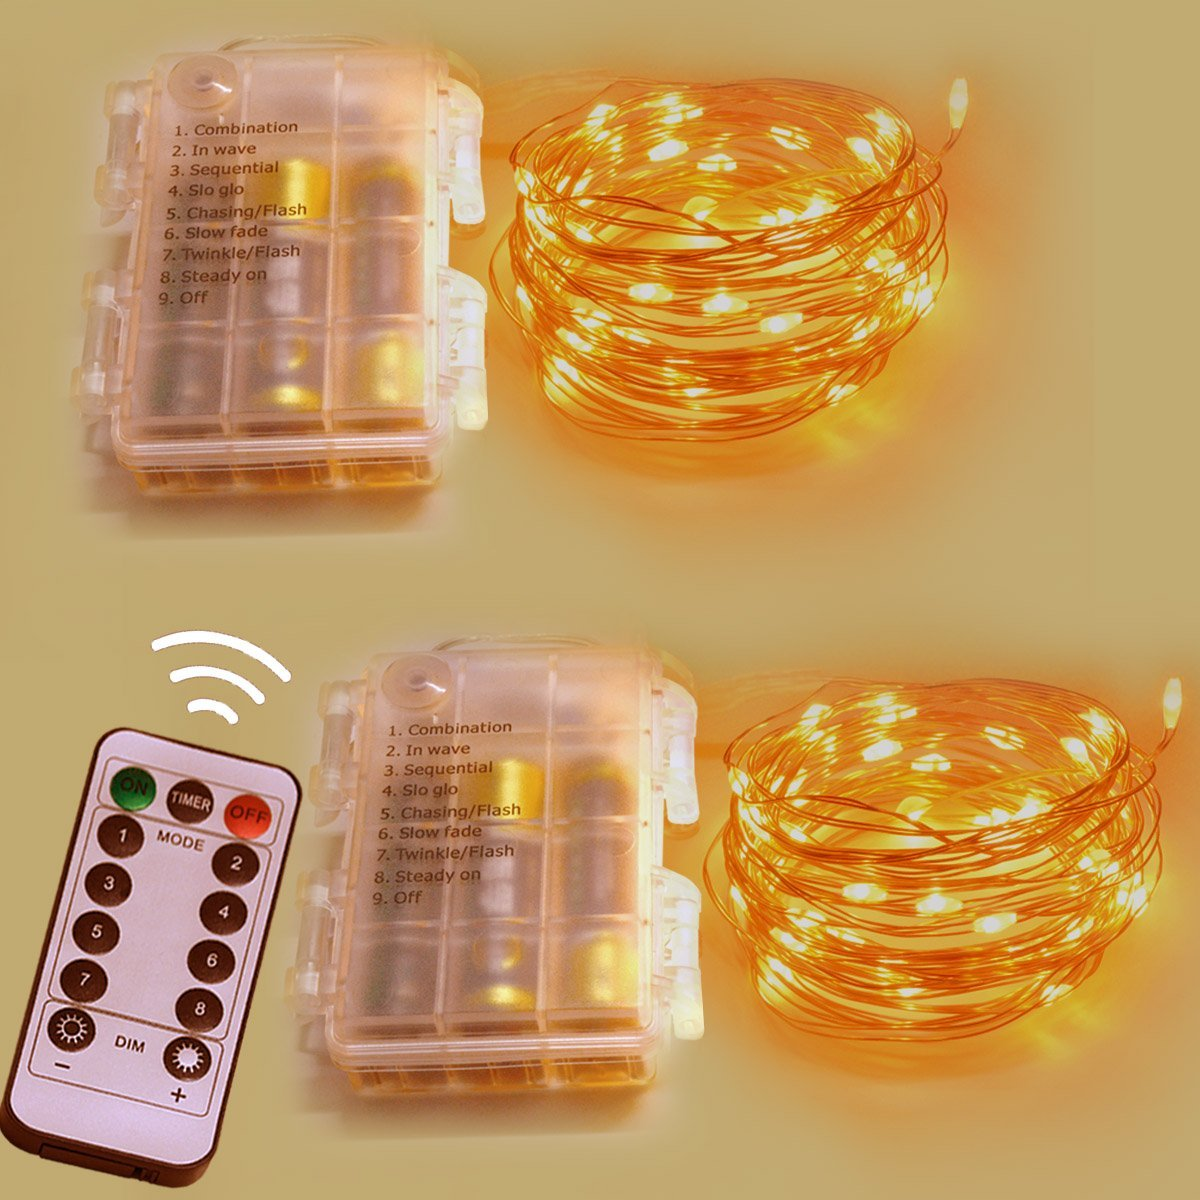 Homeleo 2 Set Battery Operated LED Copper String Lights, 16.4ft 50 LED 8 Modes Dimmable Fairy Lights with Remote Control(Yellow)